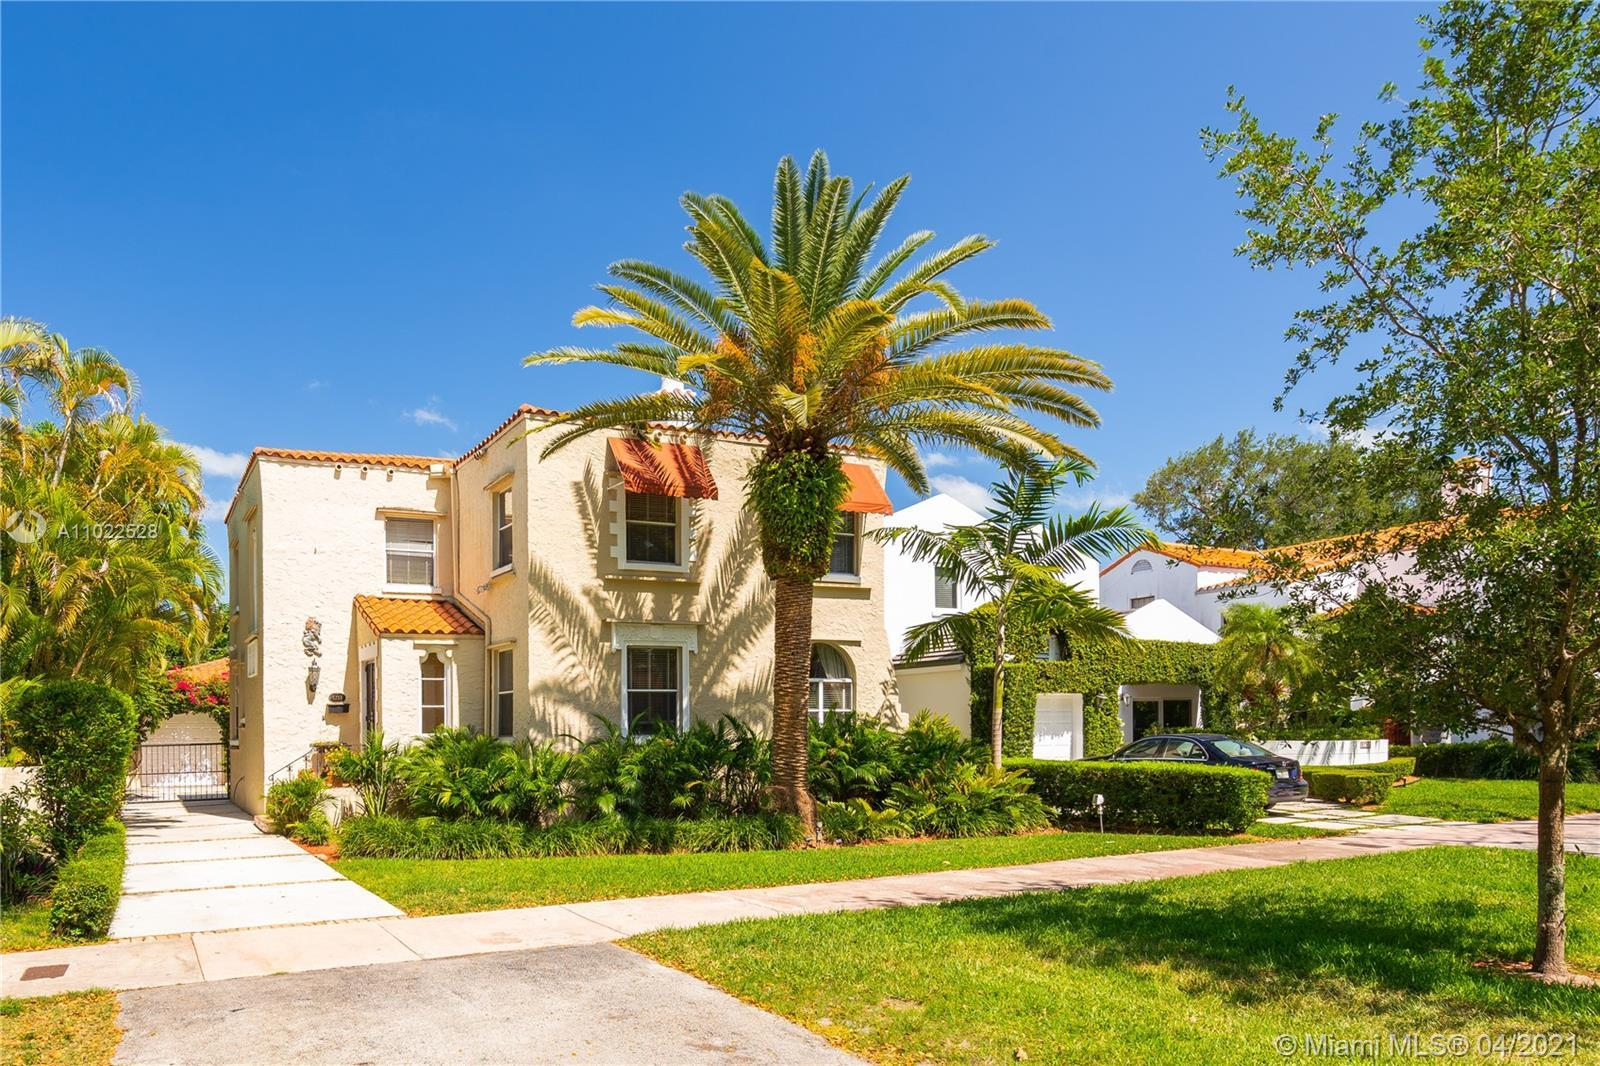 Quintessential Old Spanish style home, located on prestigious Rivera Dr in the South Gables. This Cl